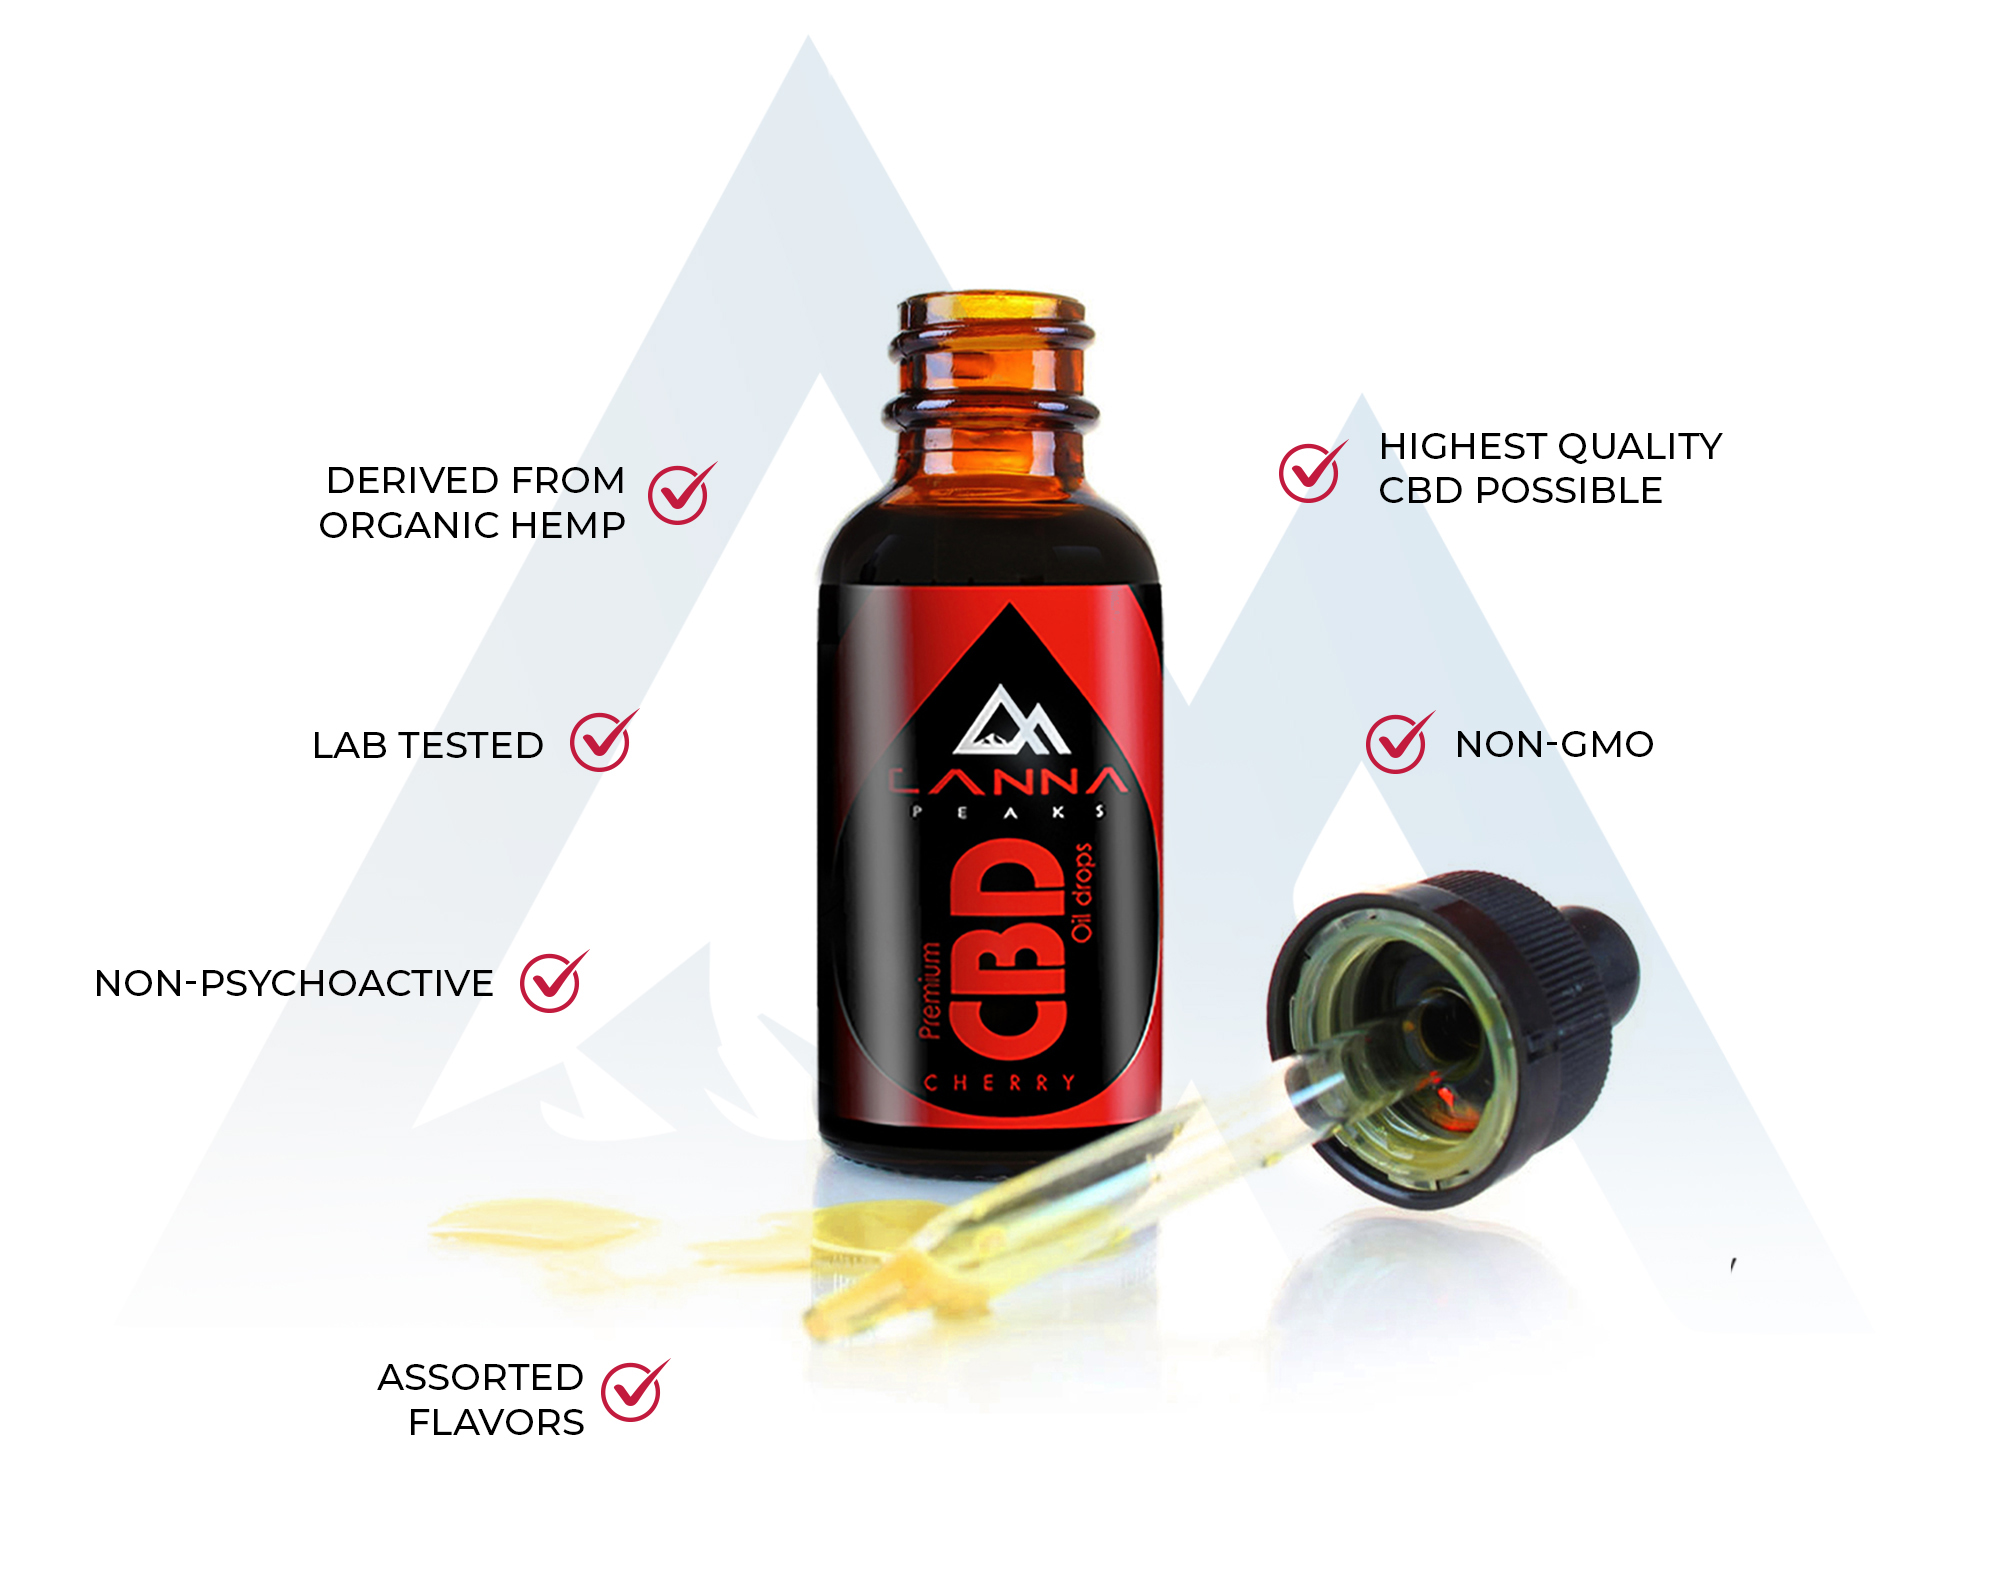 Canna Peaks High Quality CBD Products Infographic